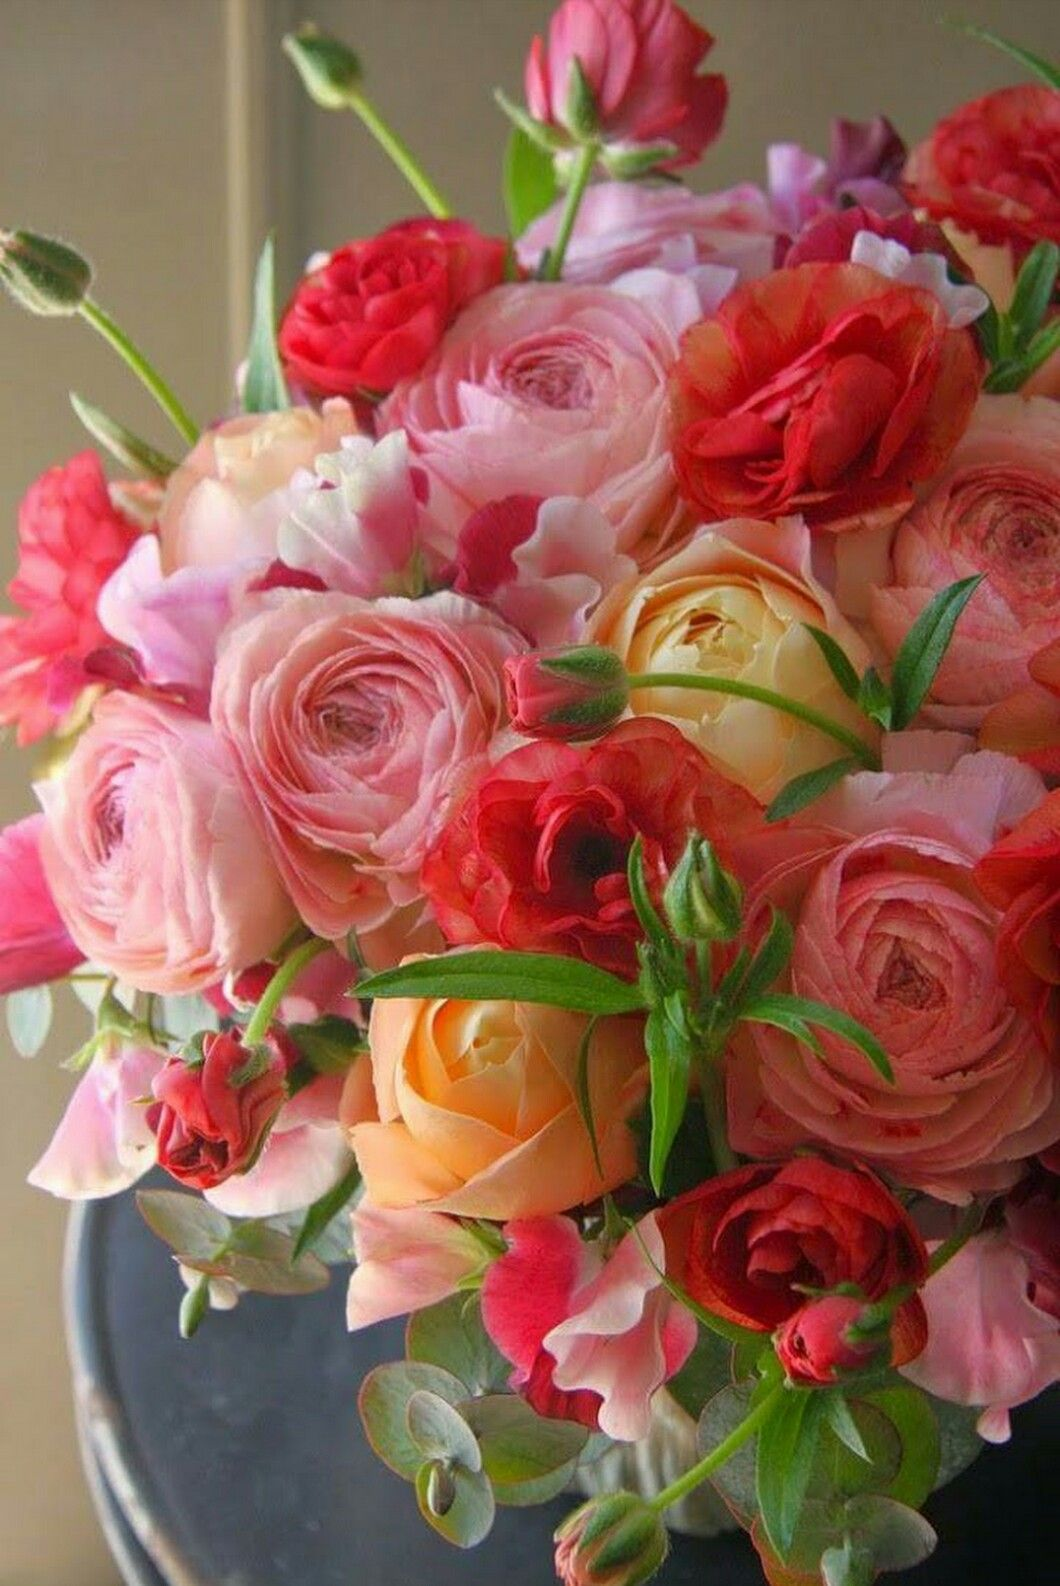 Pin By Cmn On Rose Pinterest Flowers Beautiful Flowers And